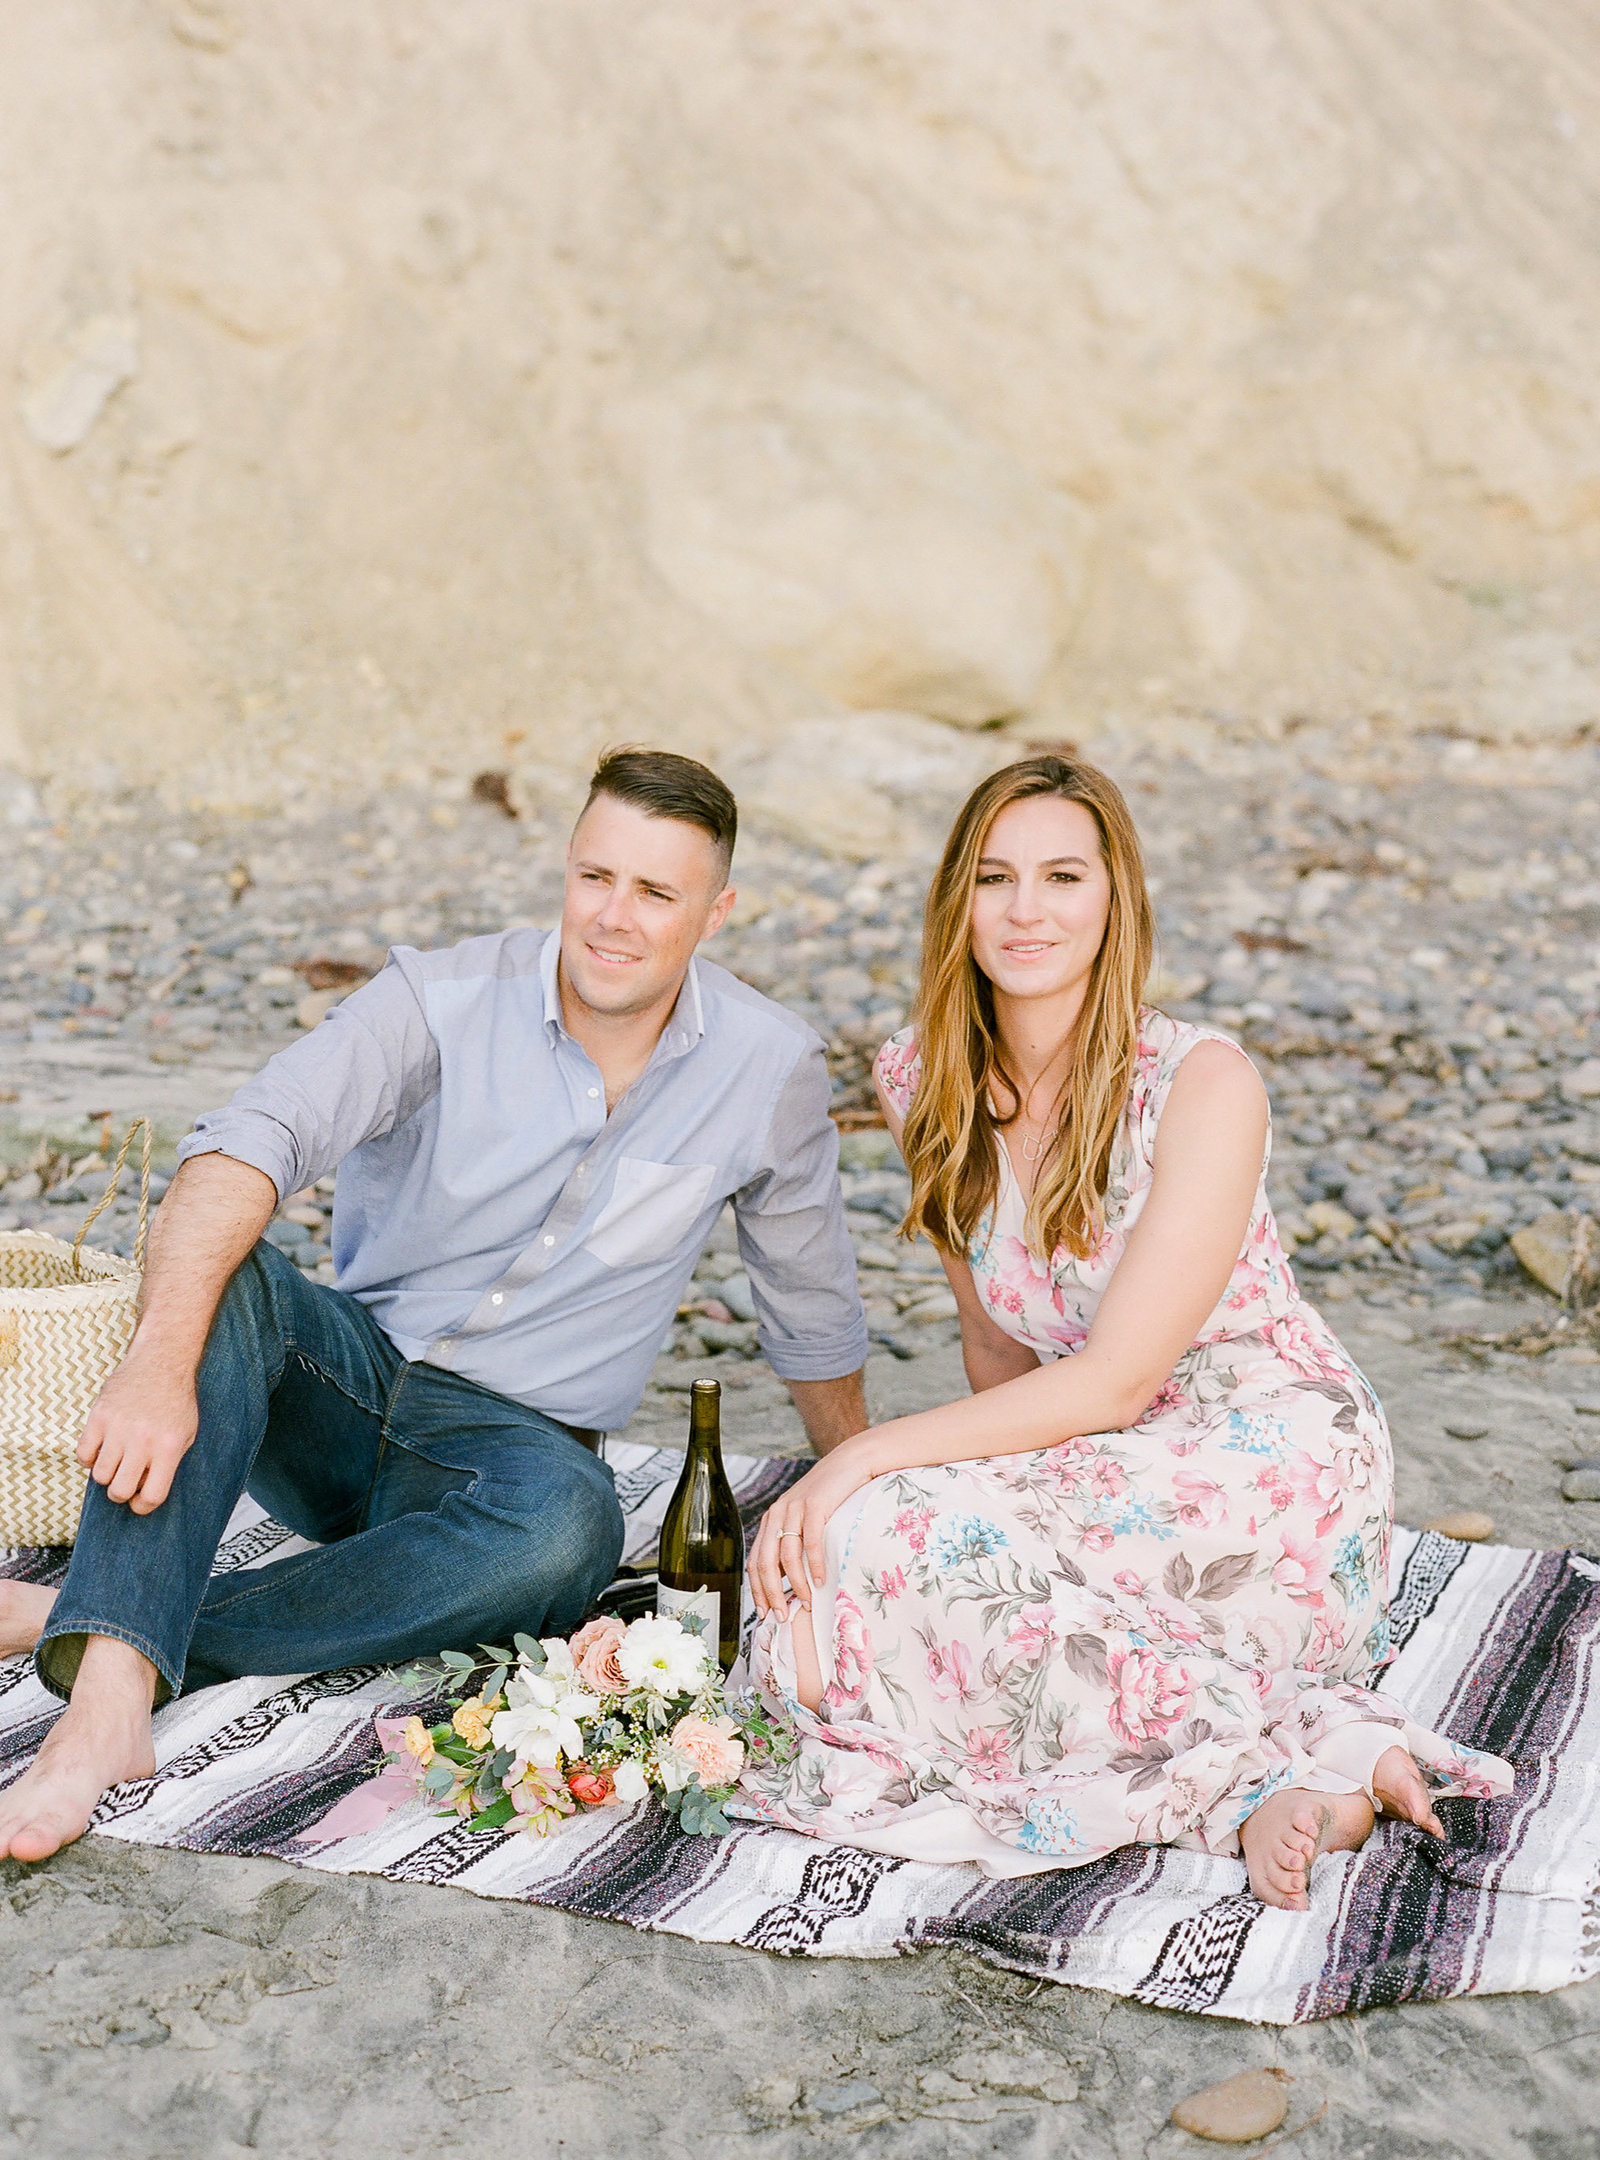 Pura-Soul-Photo-Rollin-Engagement-Film-59